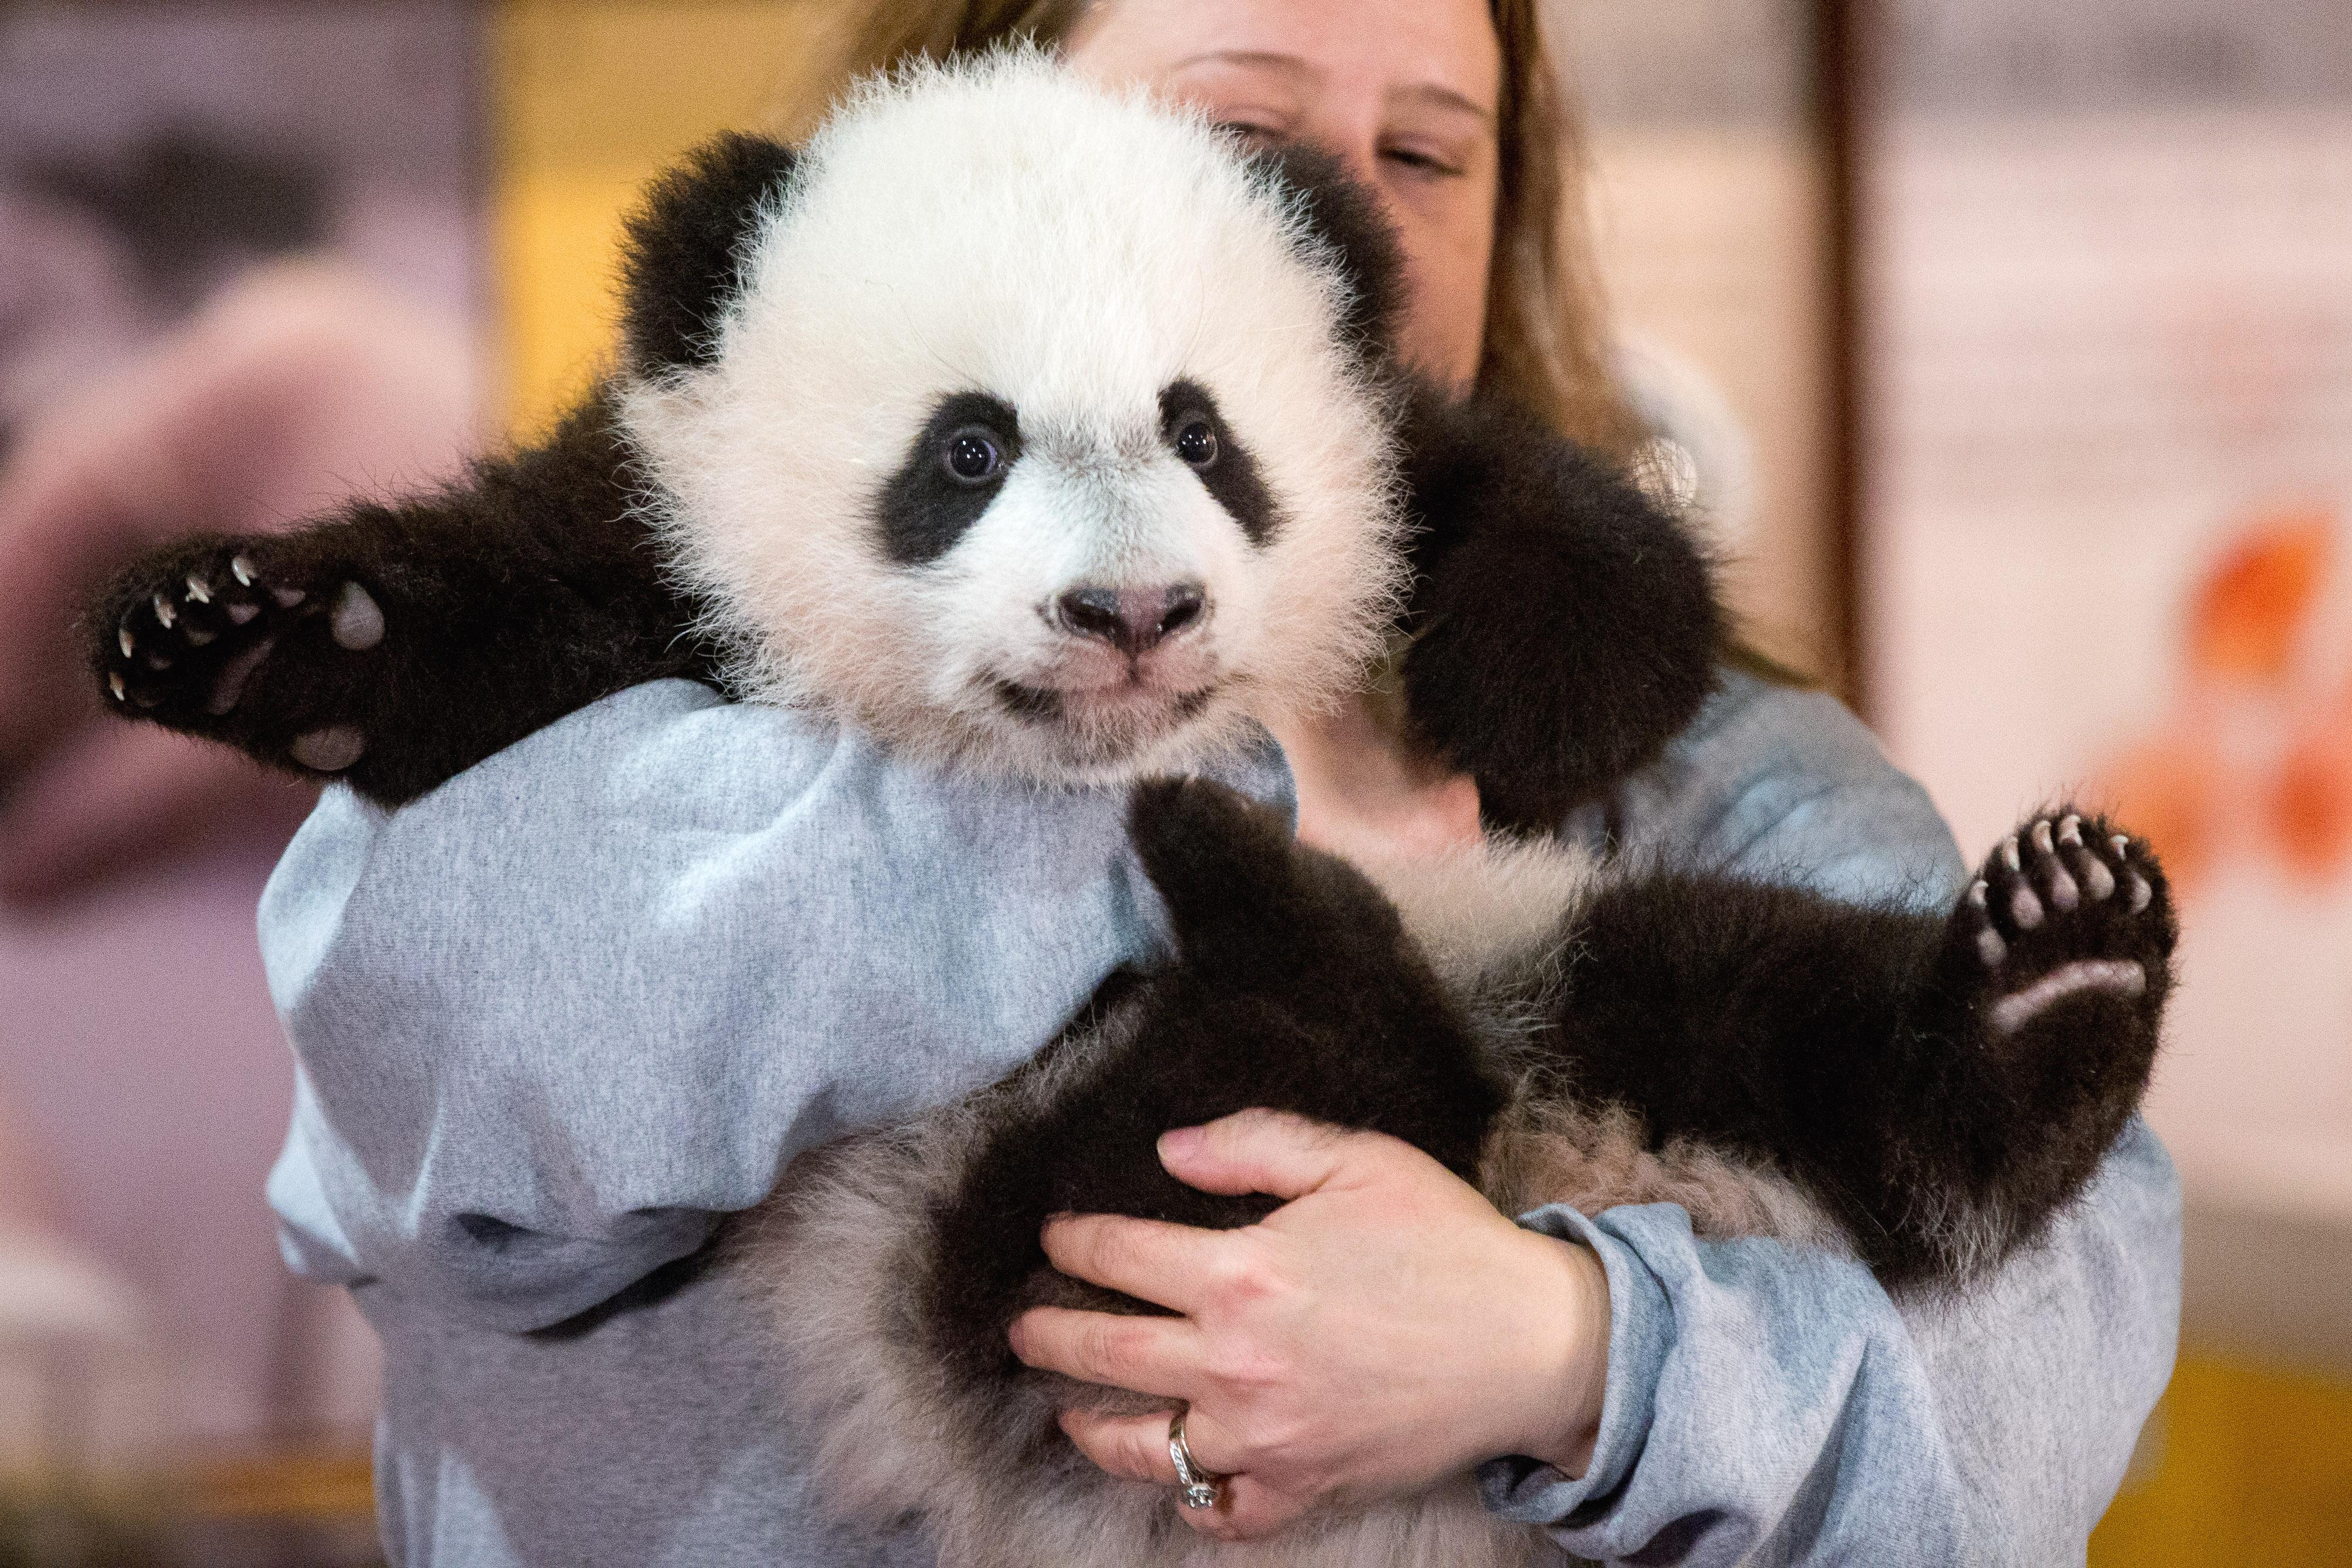 'Bye Bye Bei Bei': Giant panda to leave National Zoo in D.C., move to China in November